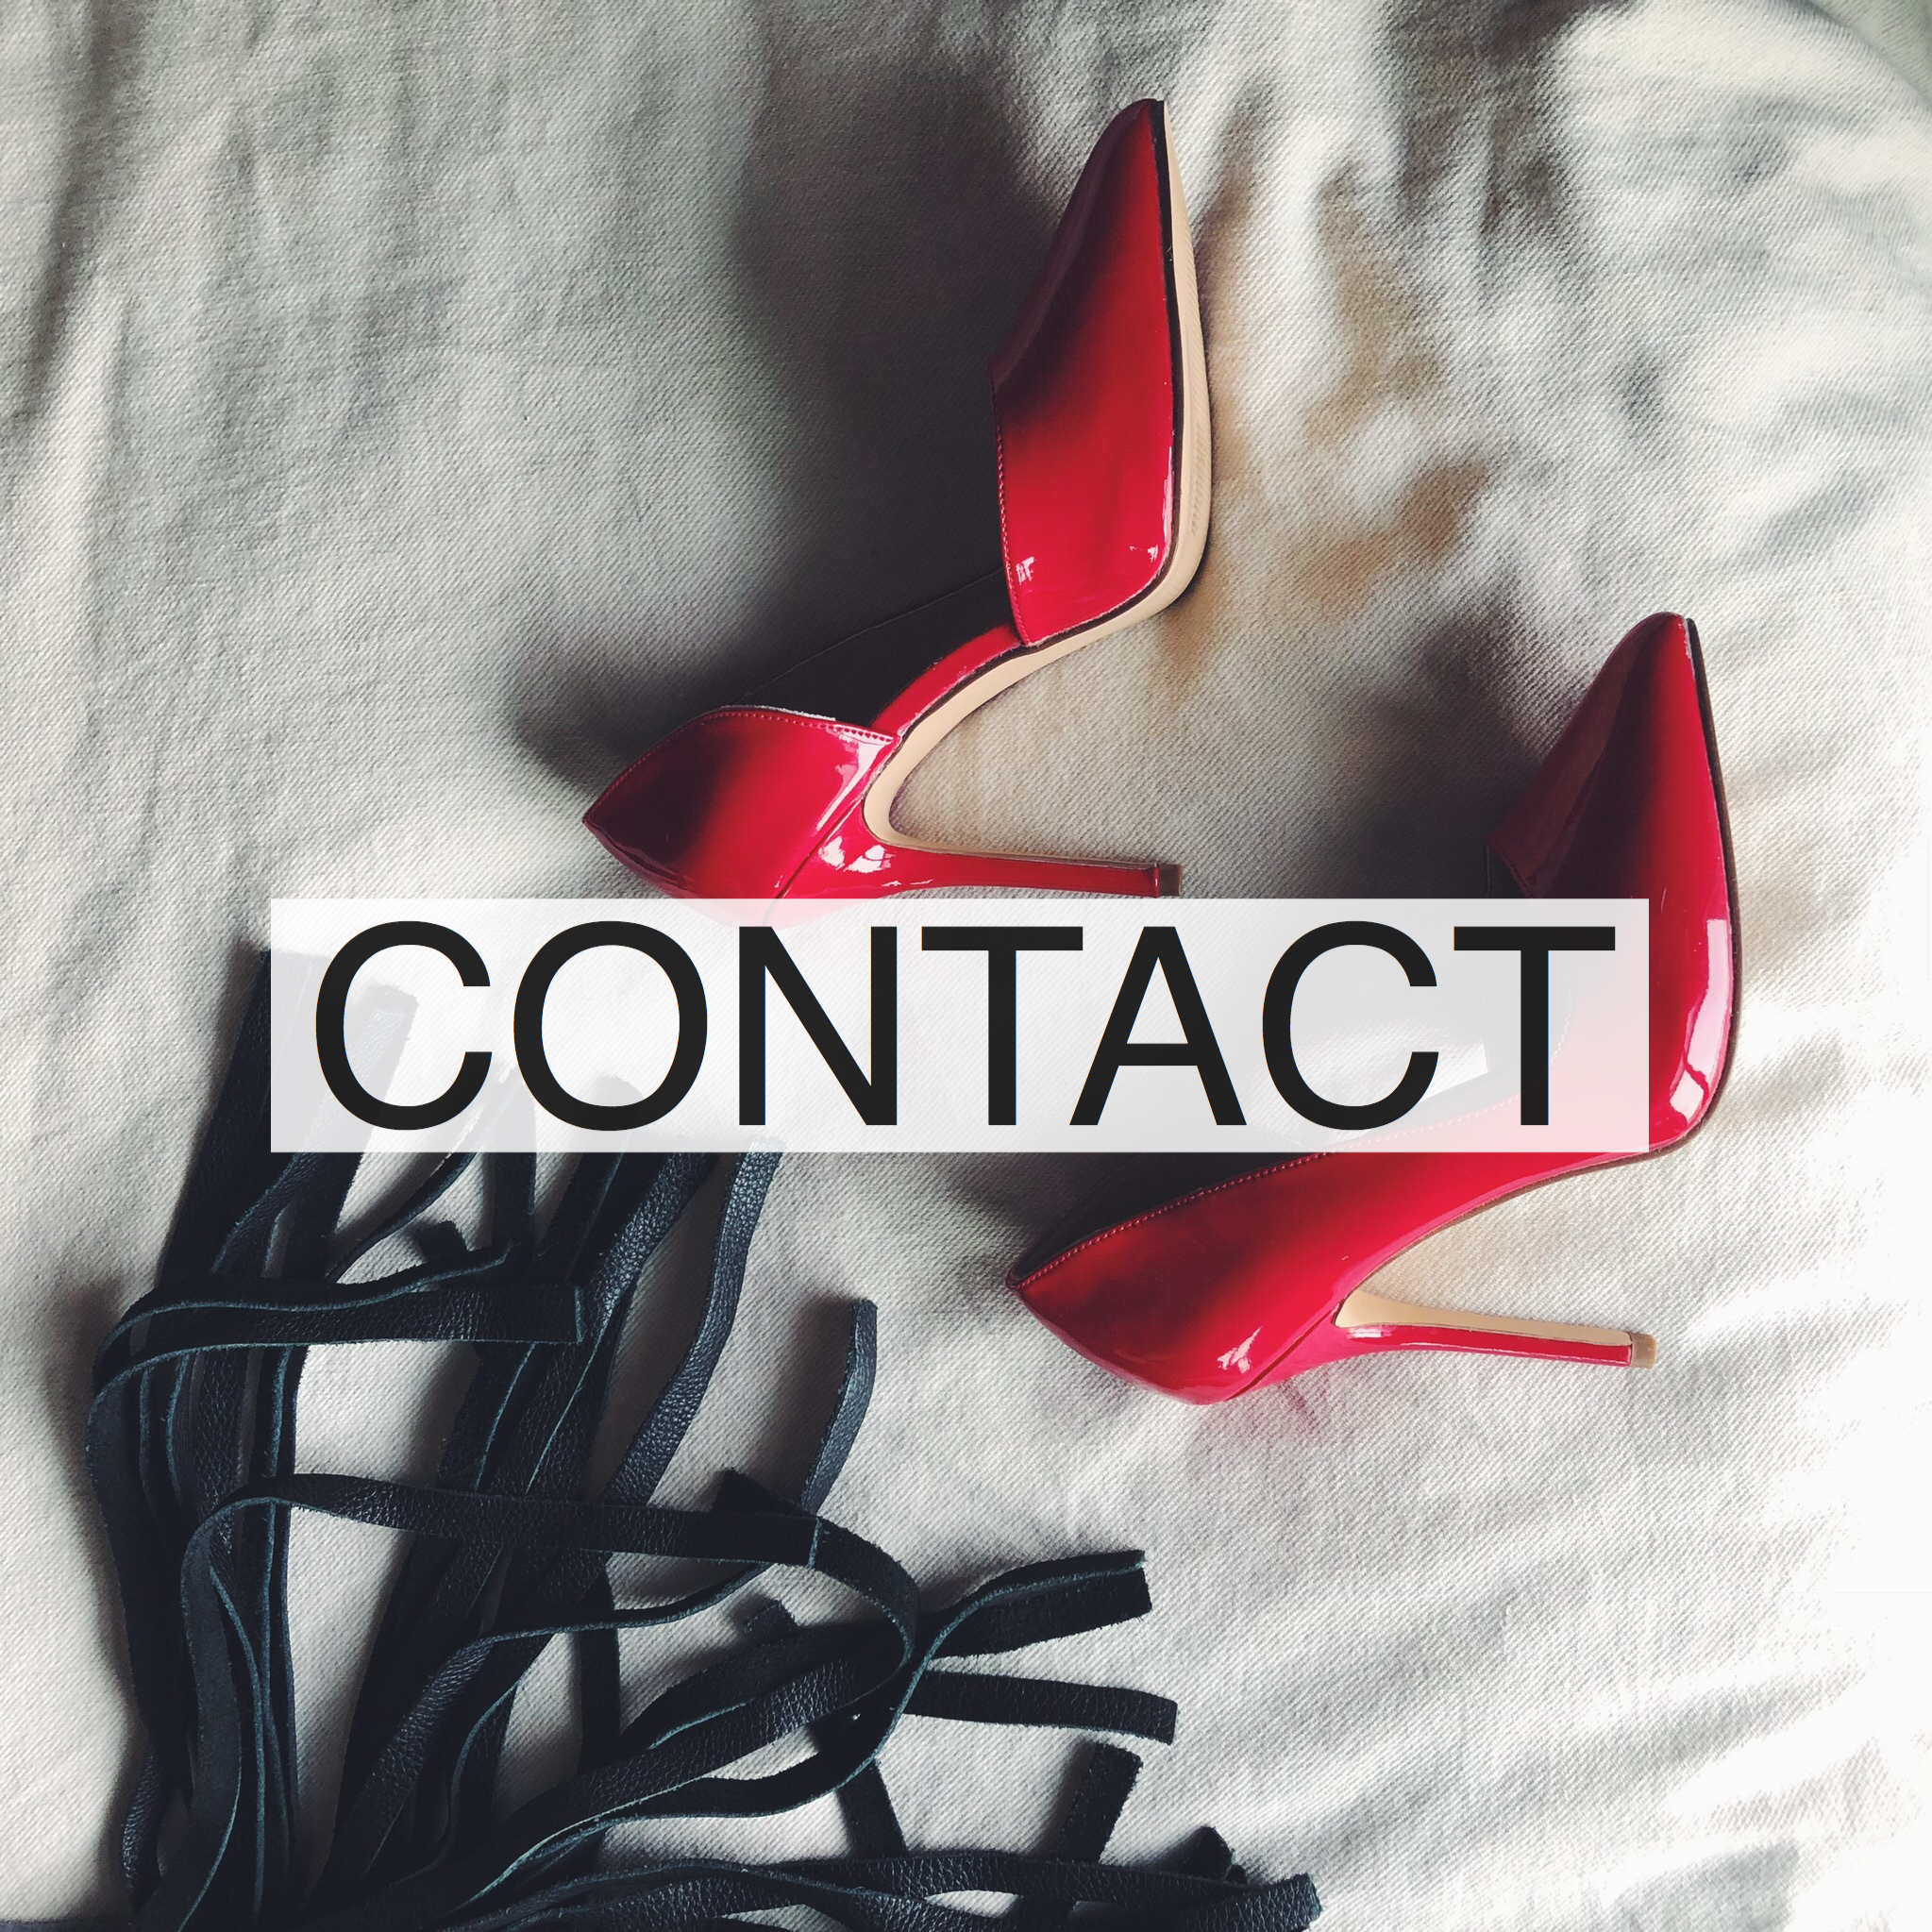 Contact New York City Prodomme